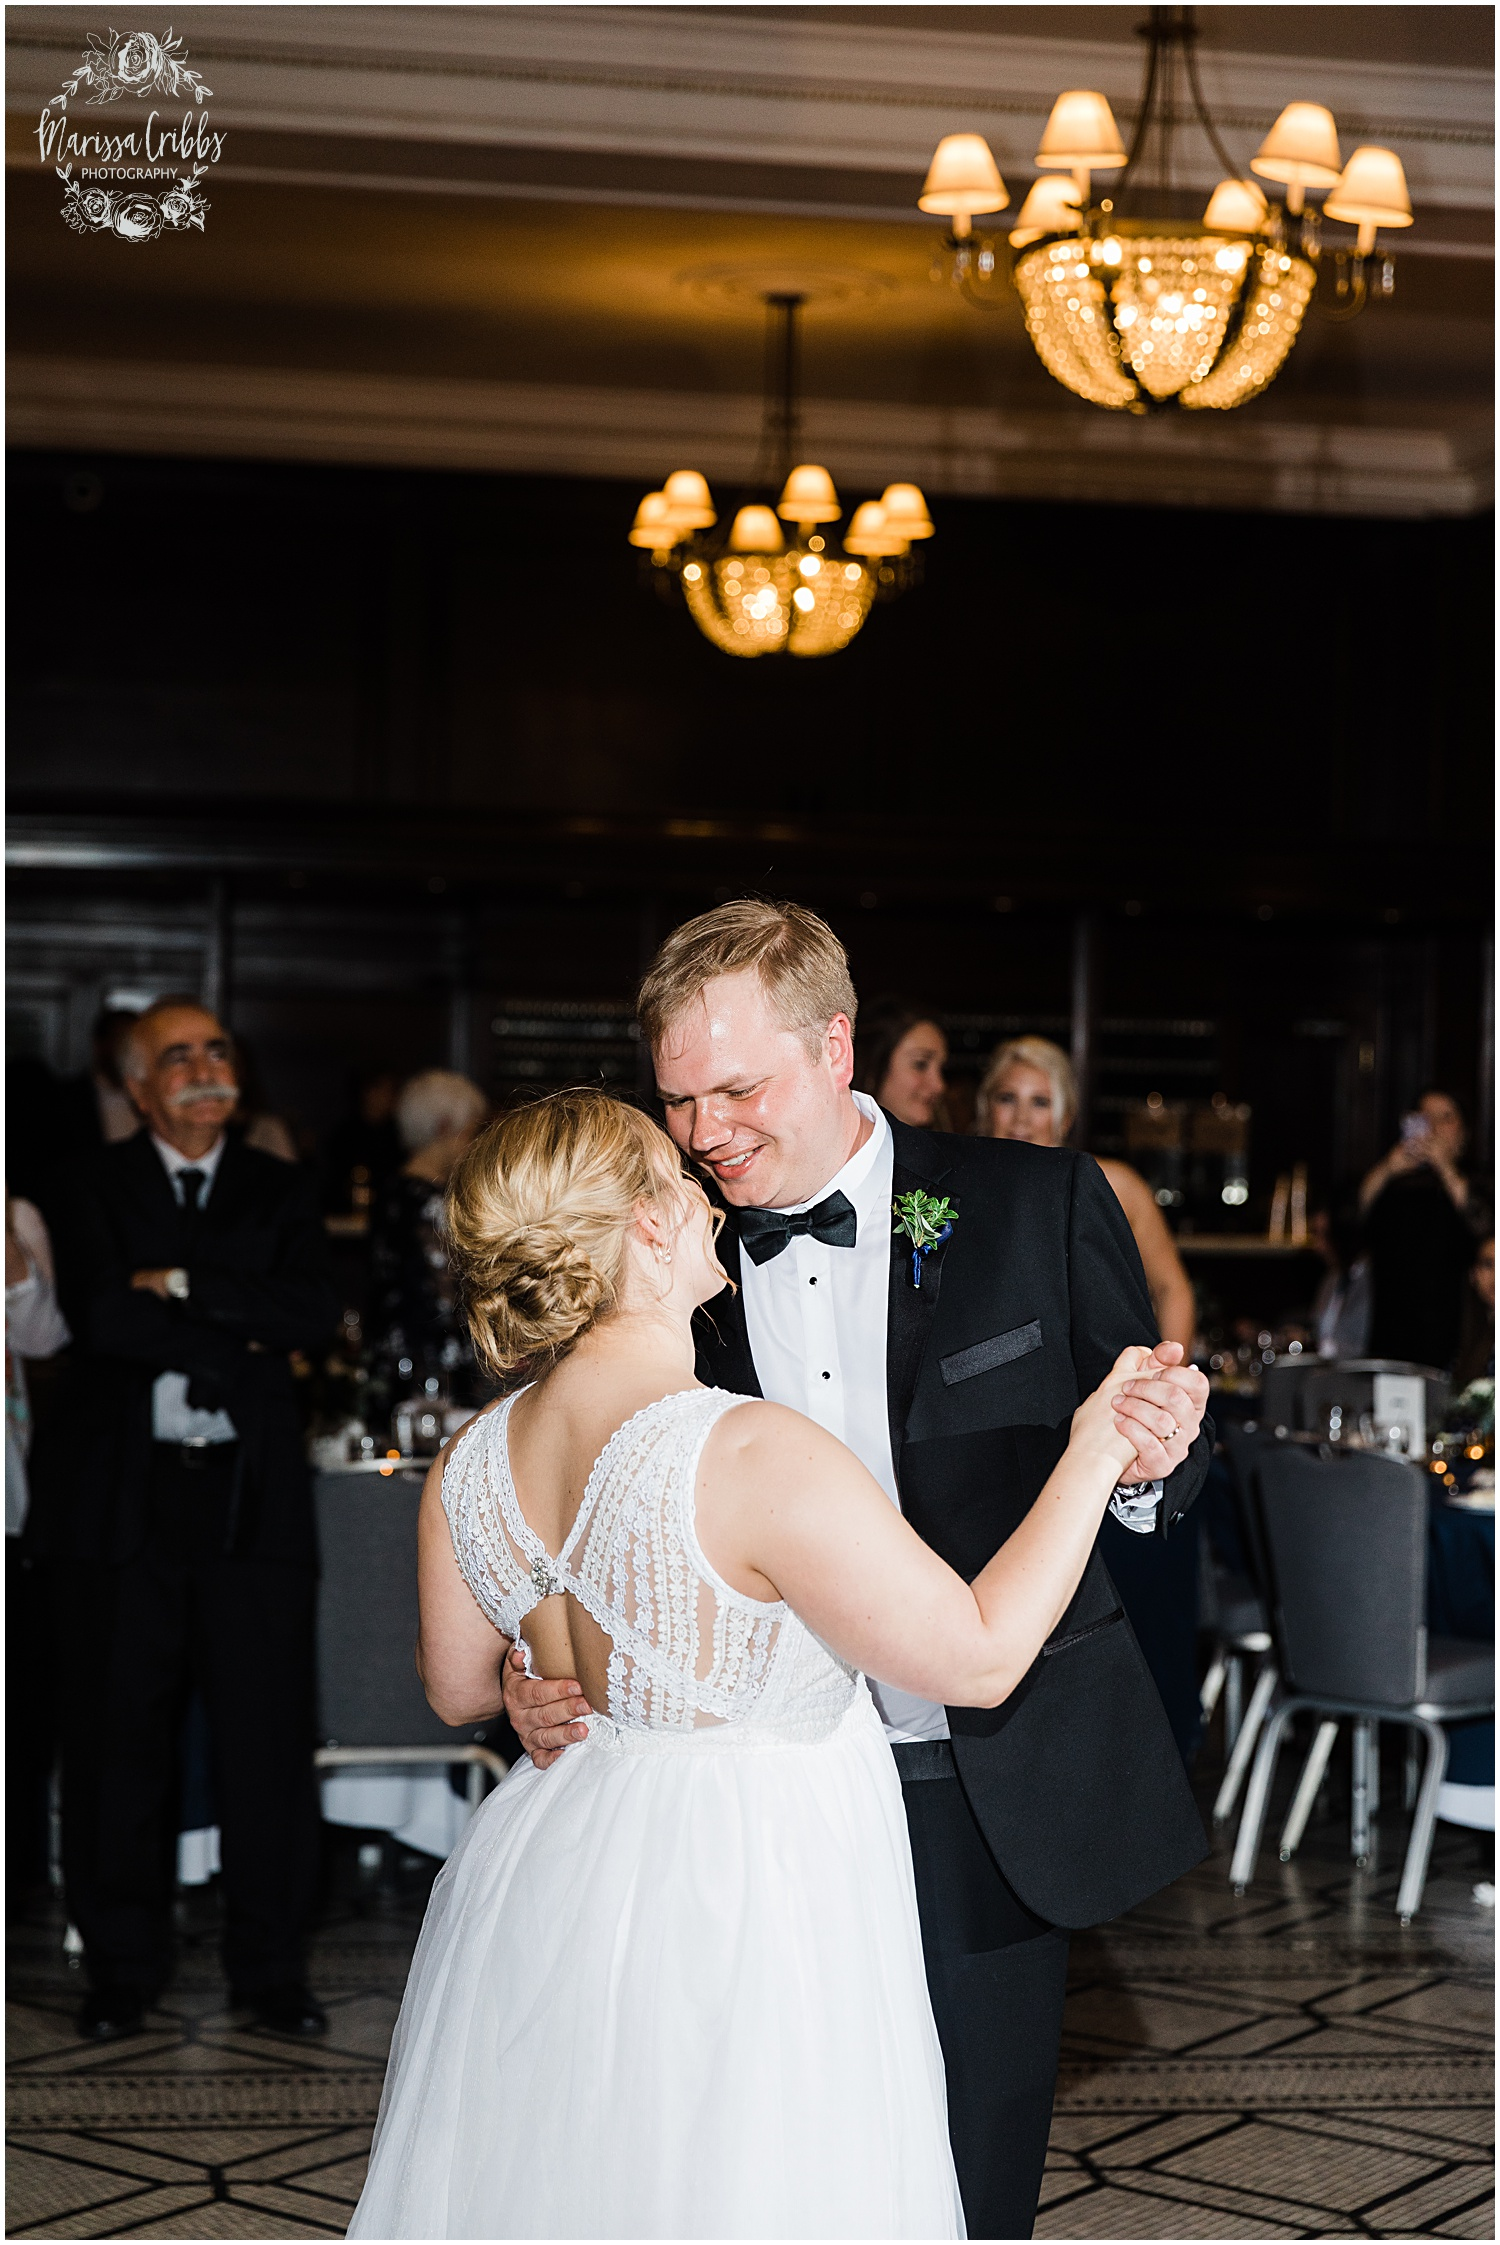 RACHEL & SCOTT MARRIED | MARISSA CRIBBS PHOTOGRAPHY_7733.jpg